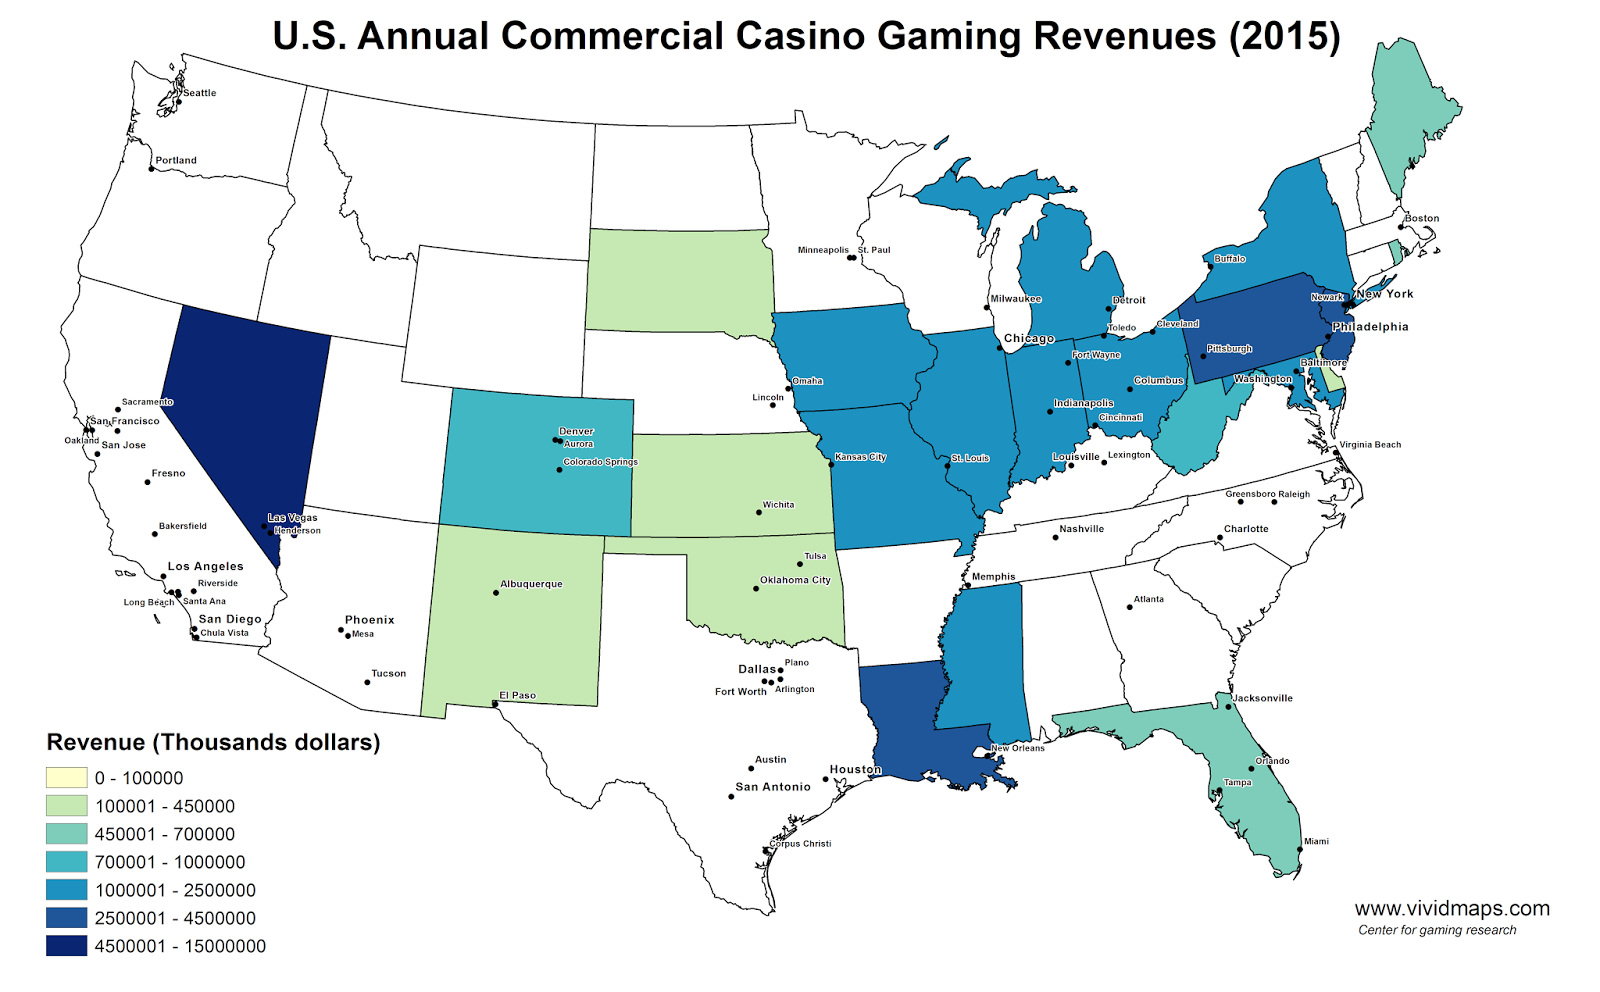 U.S. Annual Commercial Casino Gaming Revenues (2015)